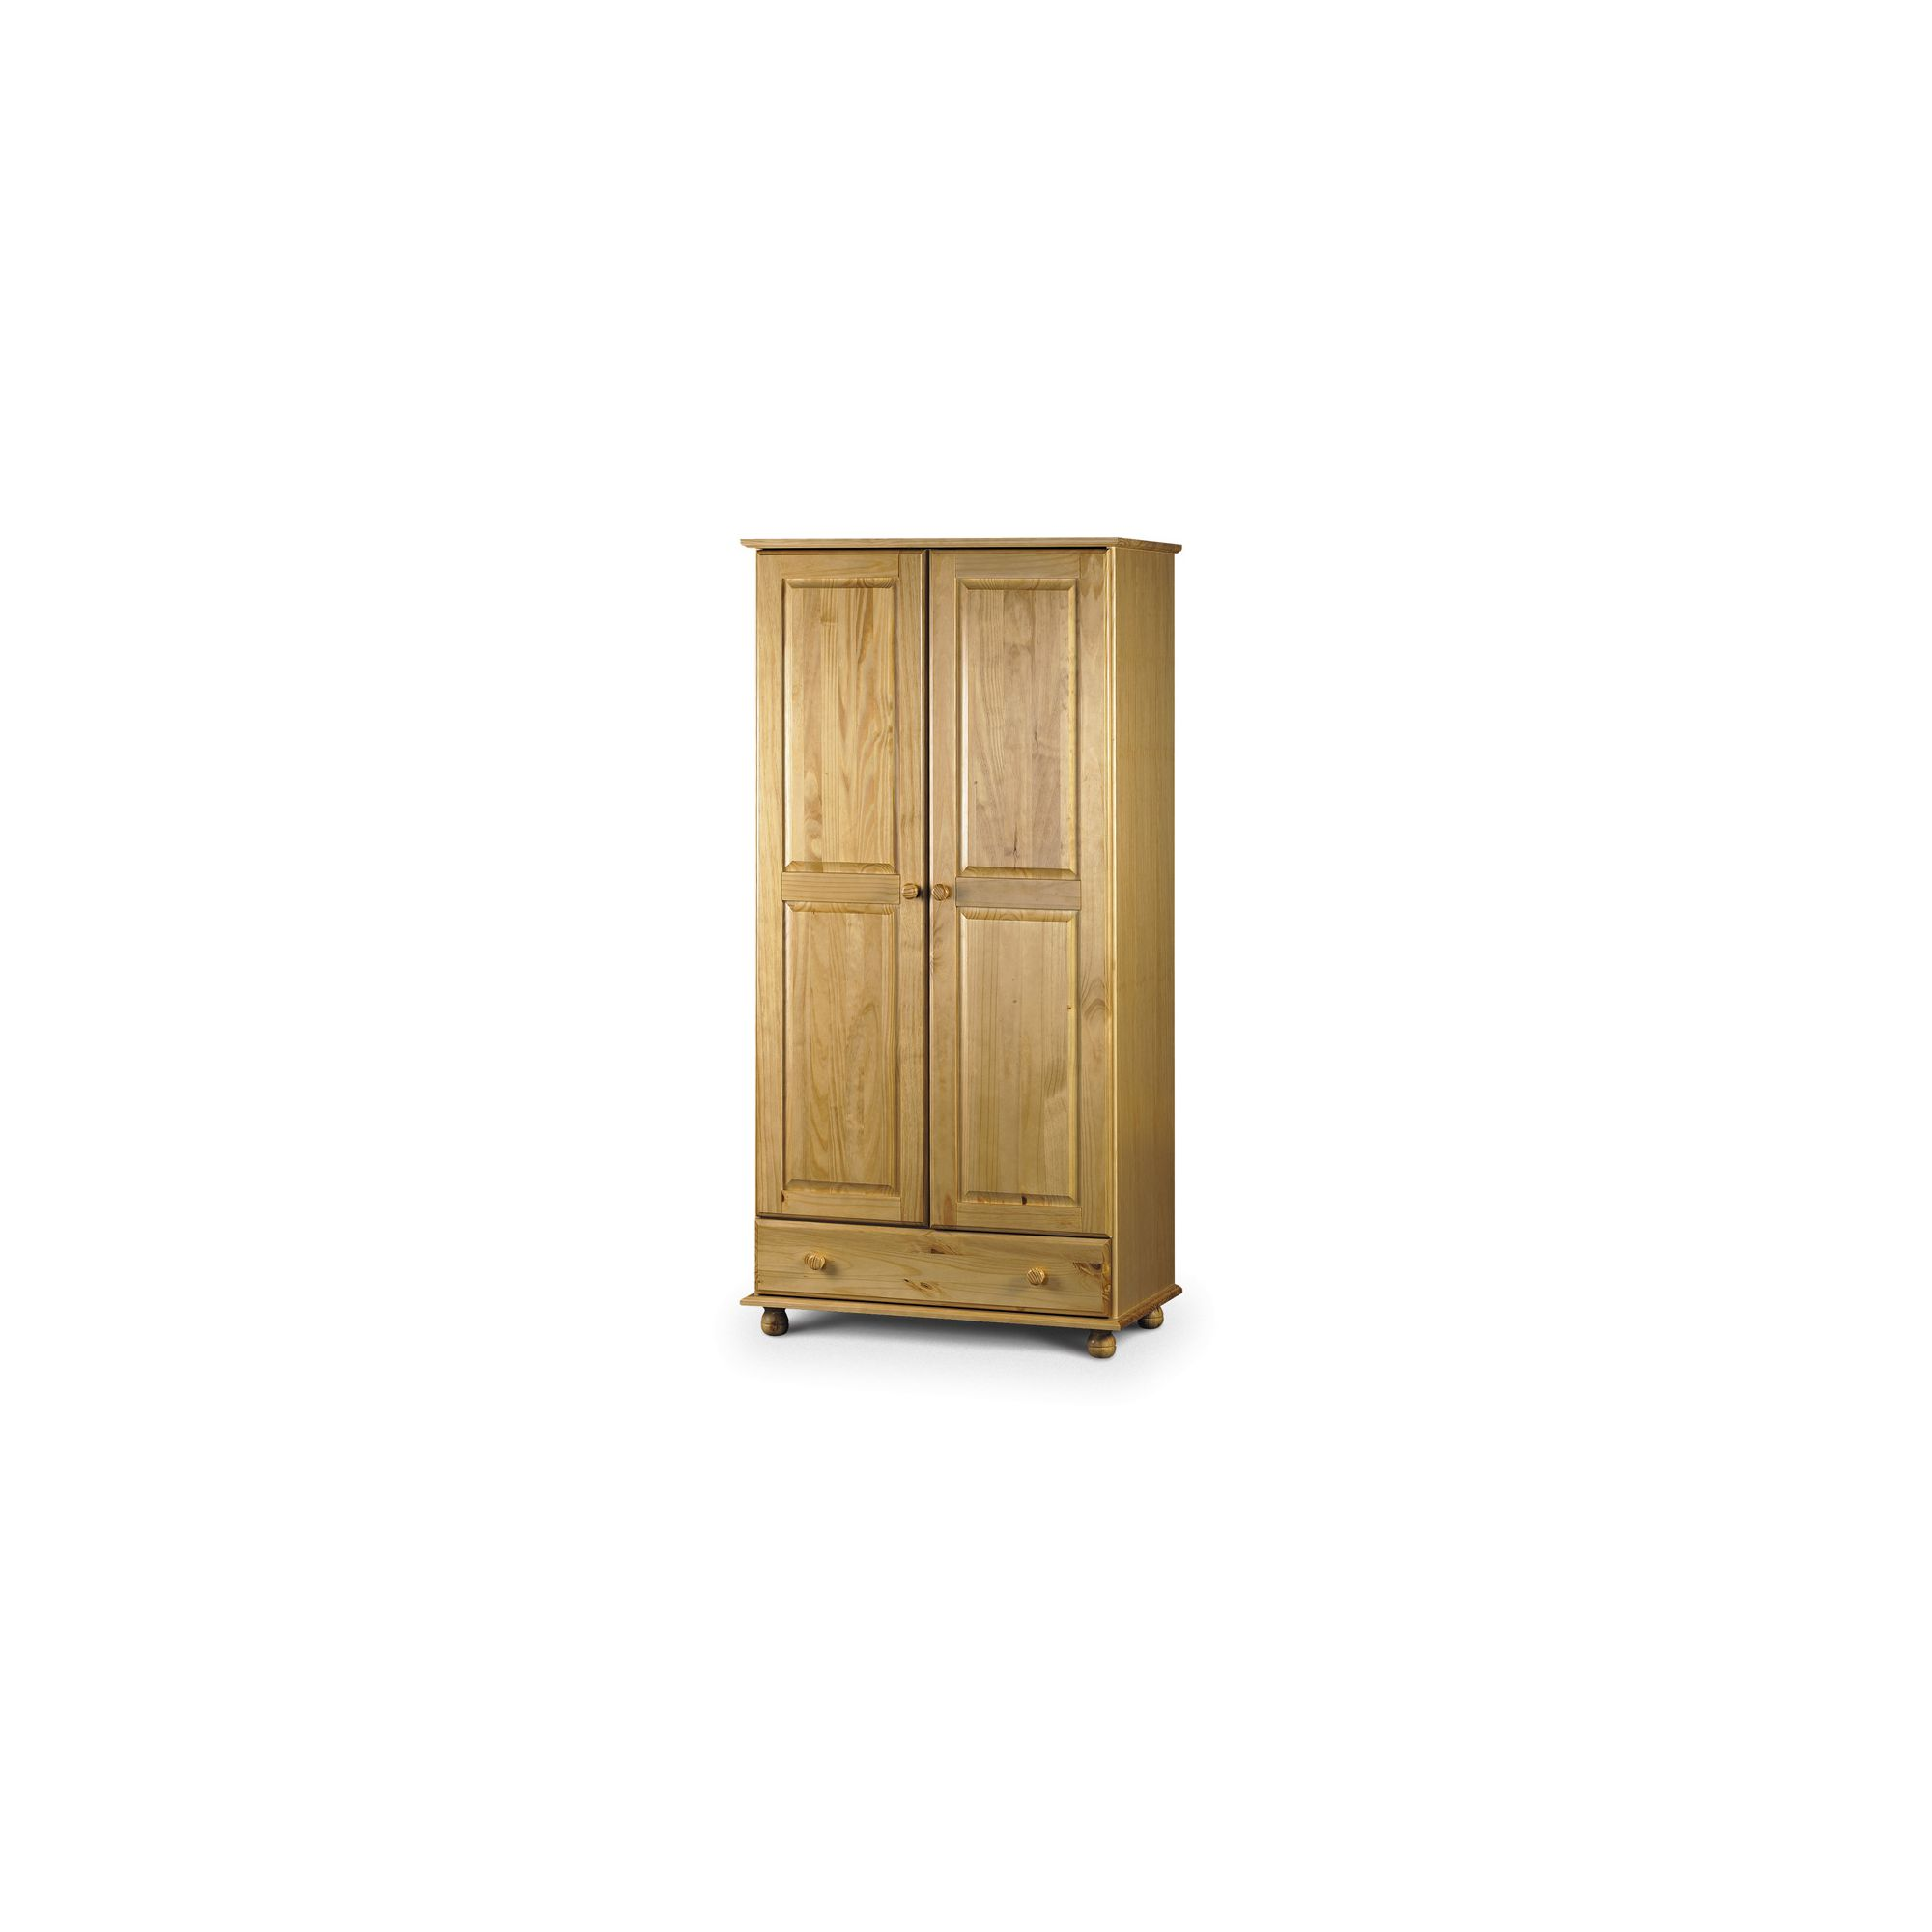 Julian Bowen Pickwick Combination Wardrobe in Solid Pine at Tesco Direct